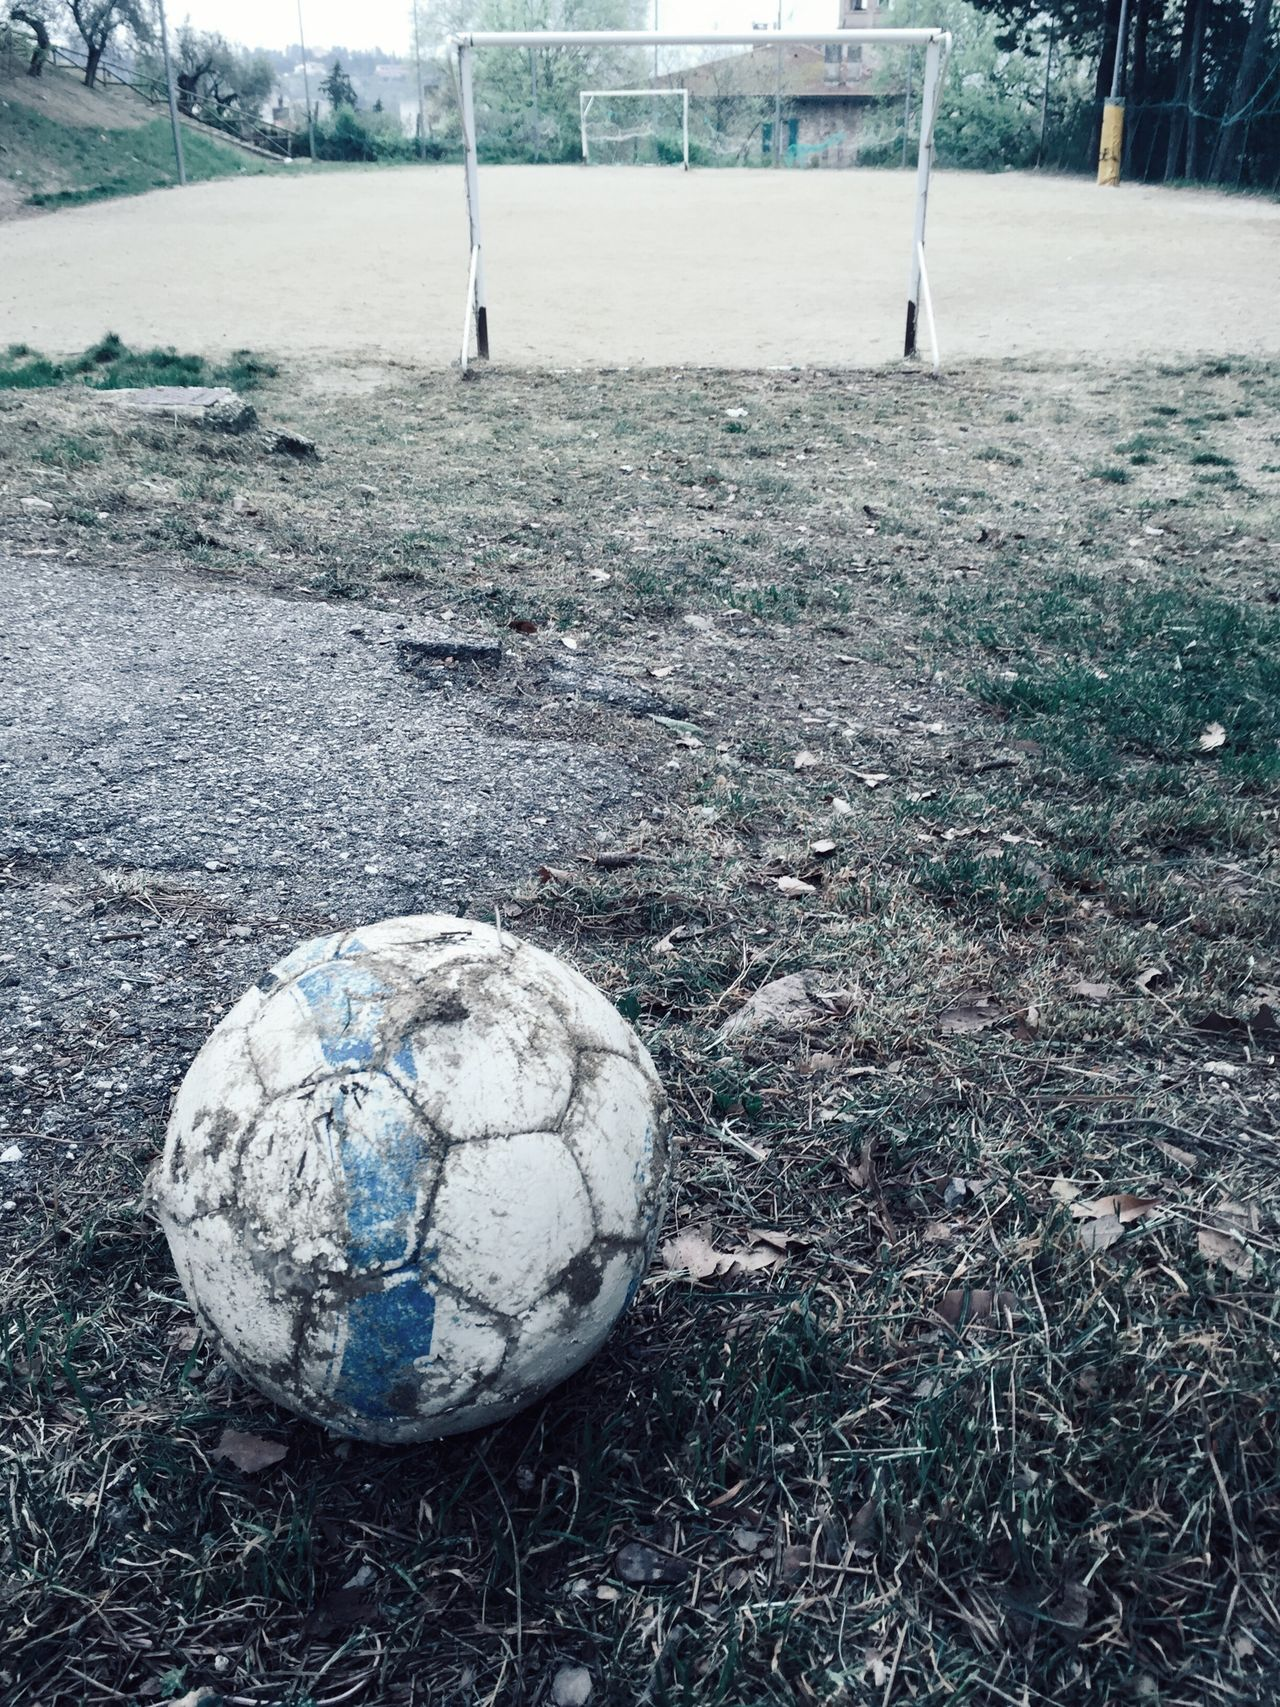 INAUDIBLE WHITE, UNSPOKEN AS A CLOUD; WHILE FROM THE SILENCE, A THIRST OF BREATH [series], by Claudia Ioan Soccer Soccer Ball Soccer Field Ball Grass Sport Outdoors No People Day Park Adapted To The City Mobile Photography Iphone6 VSCO Urban Photography Urban Perugia IPhoneography